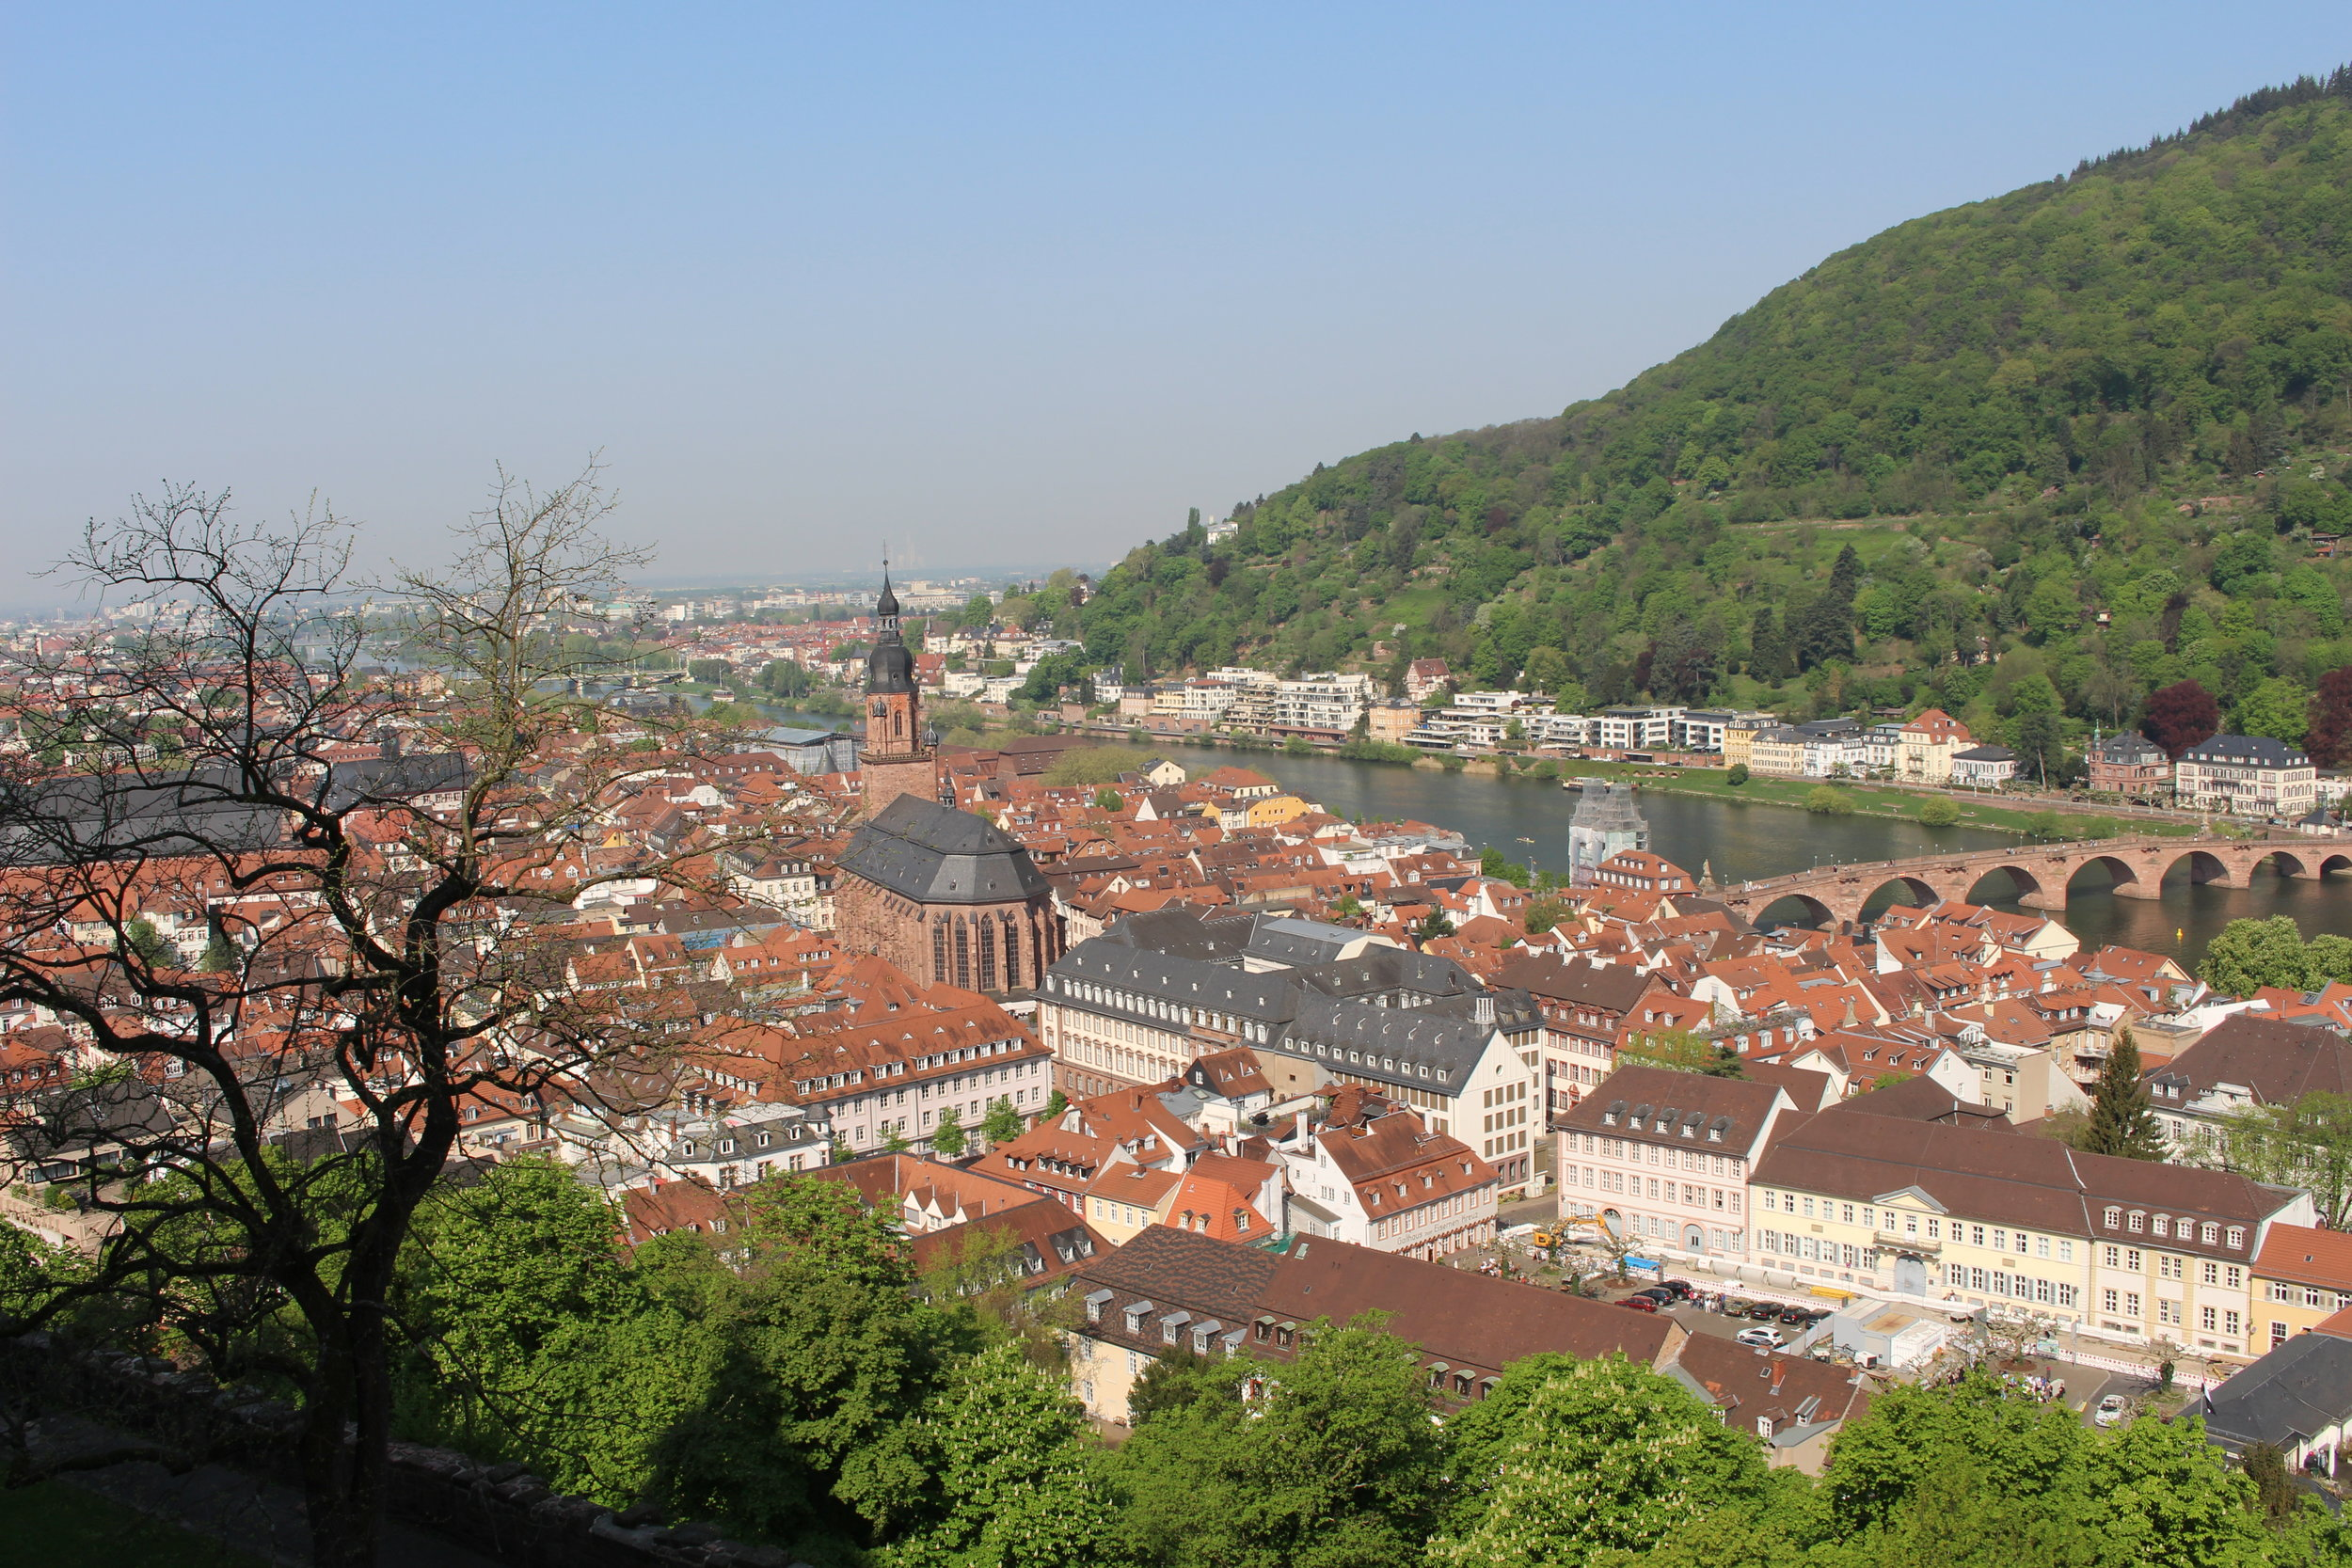 The view from the Castle in Heidelberg, Germany is so beautiful my photo doesn't even do it justice.